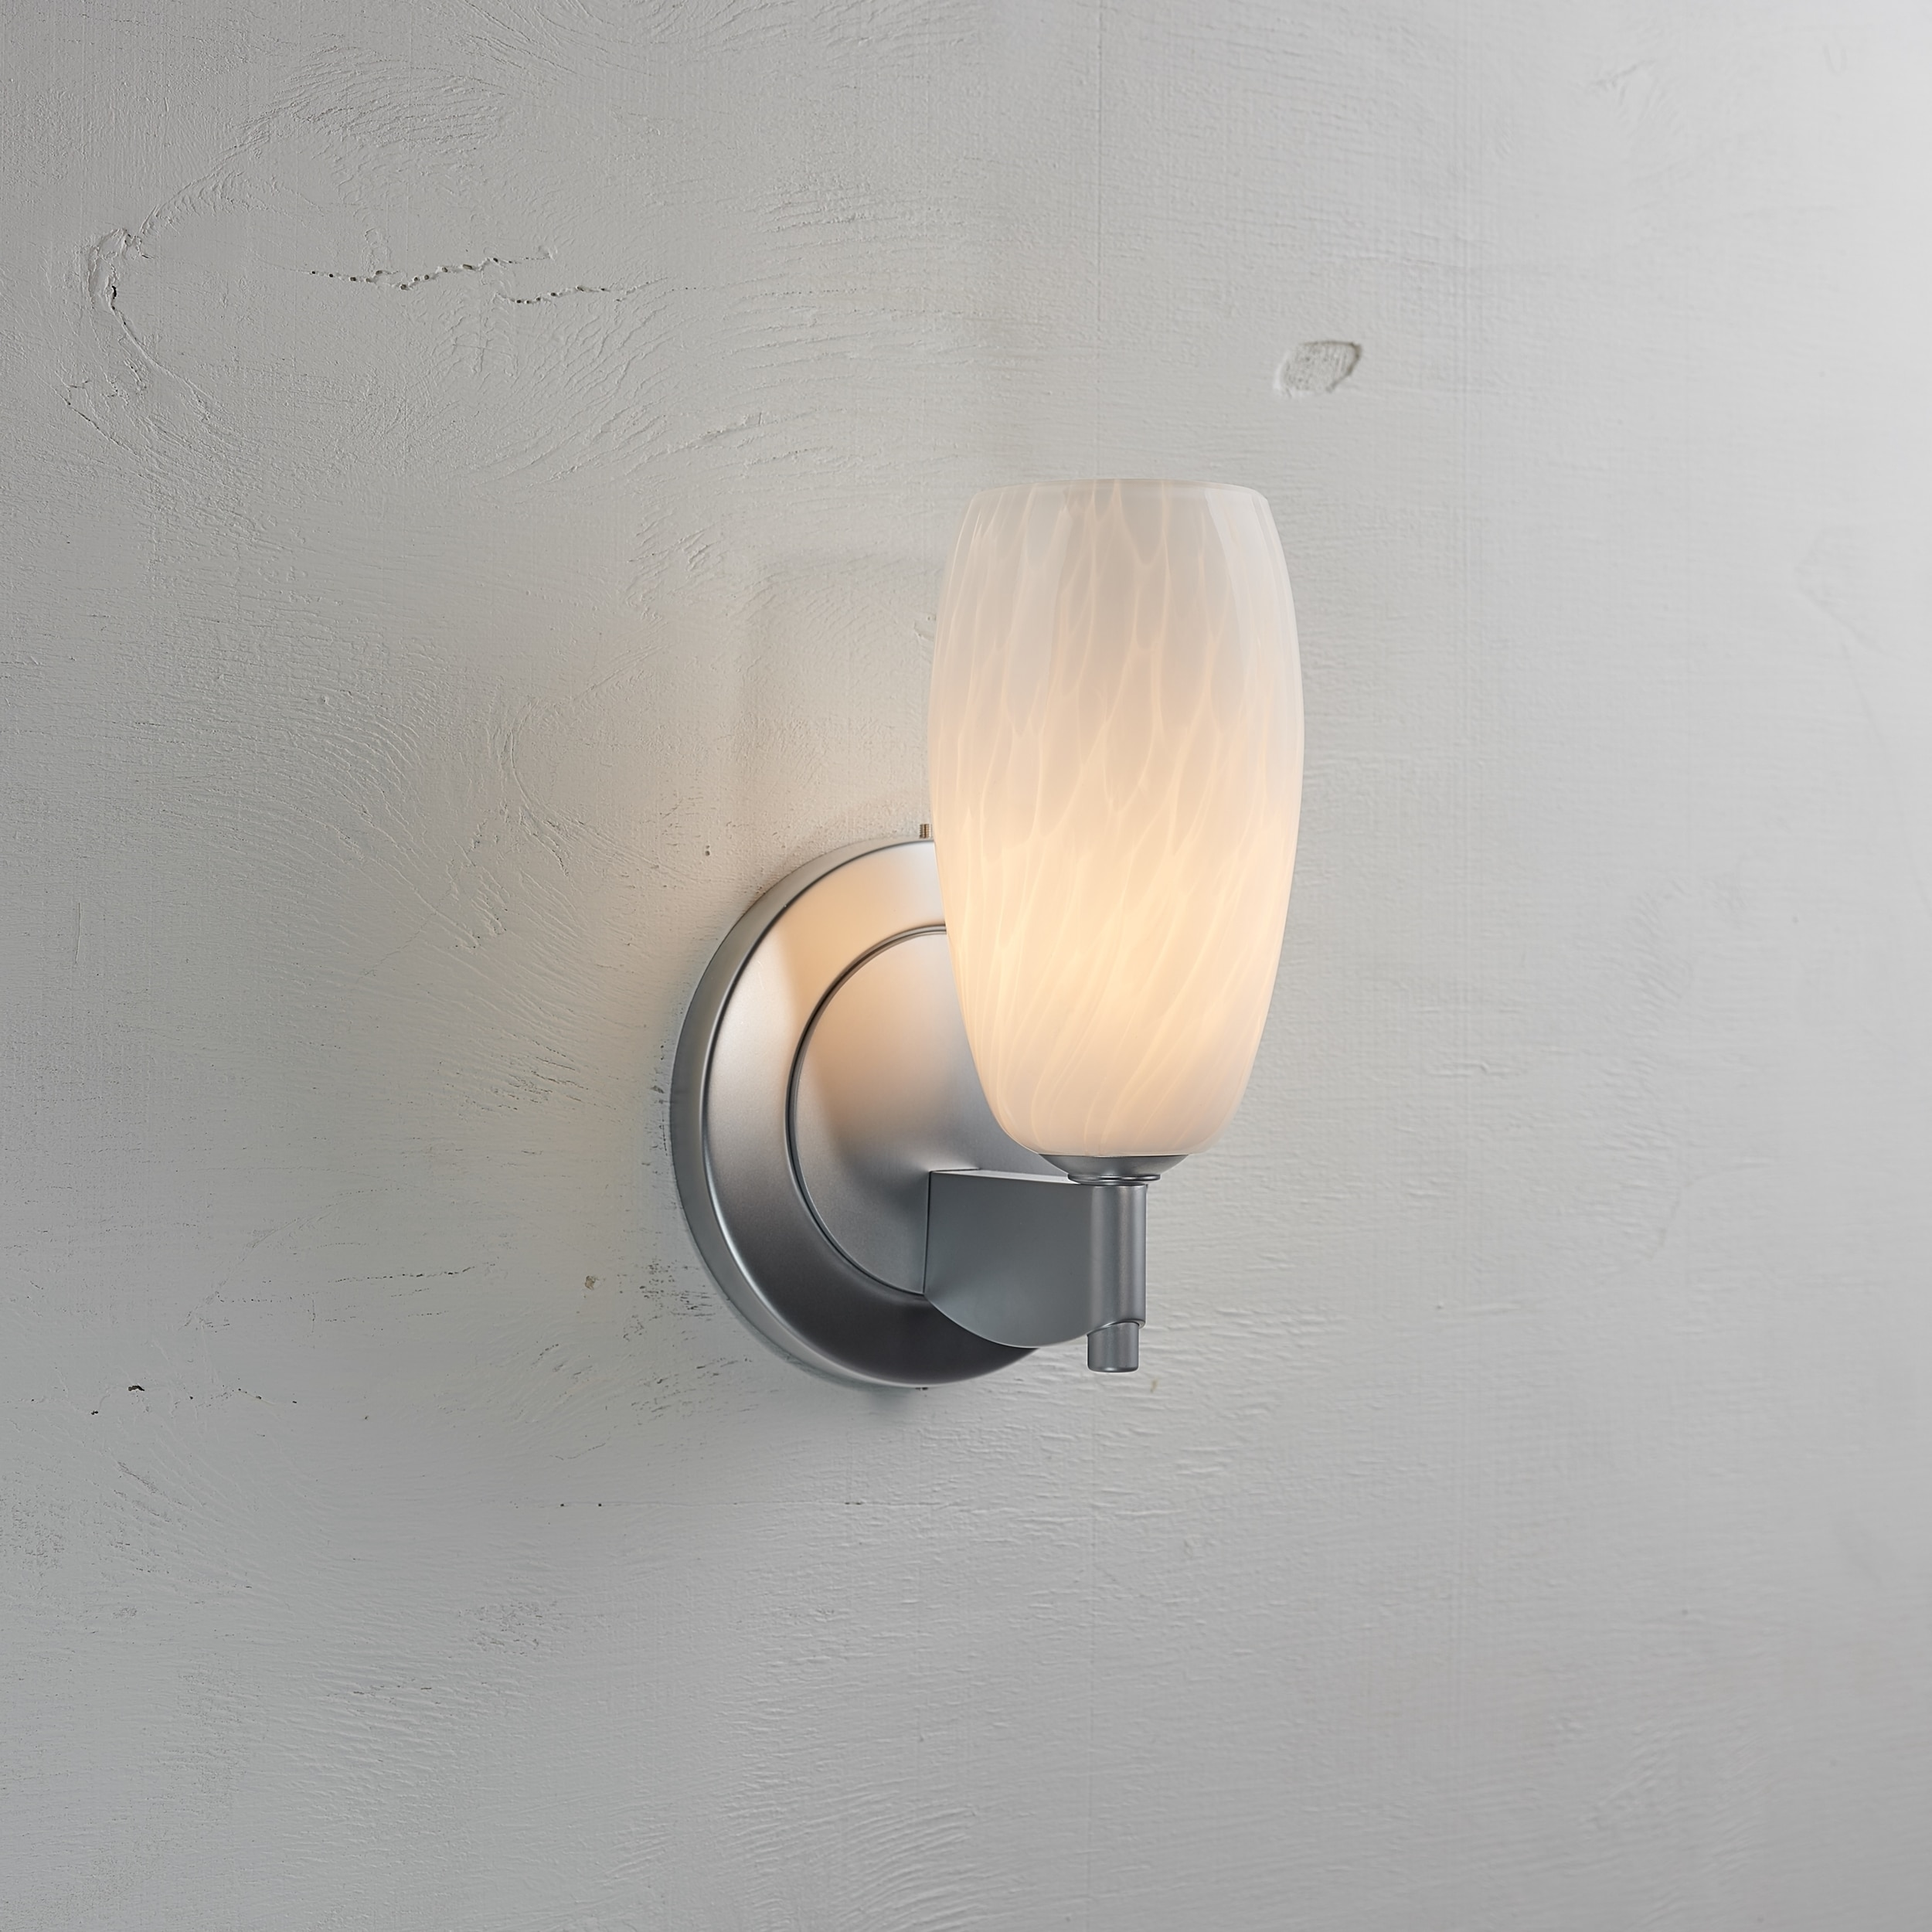 Bruck Lighting Ciro Mini 1 Light Matte Chrome Wall Sconce With White Glass Shade Overstock 13310277